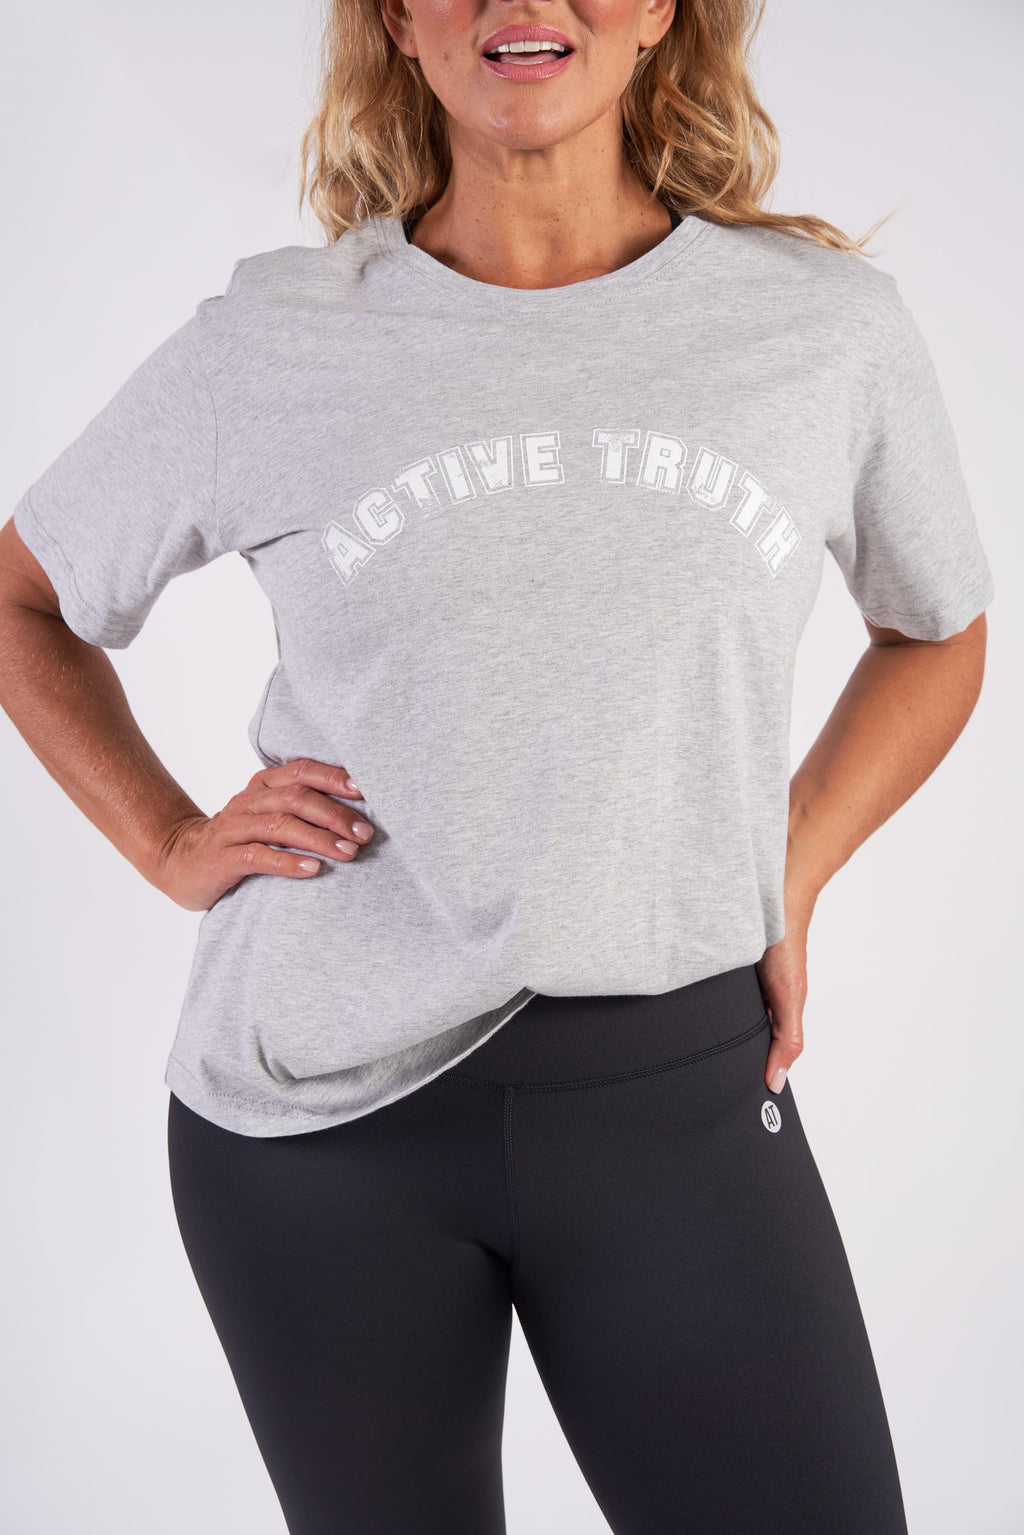 activewear-relaxed-crew-tee-organic-cotton-greymarle-large-front3